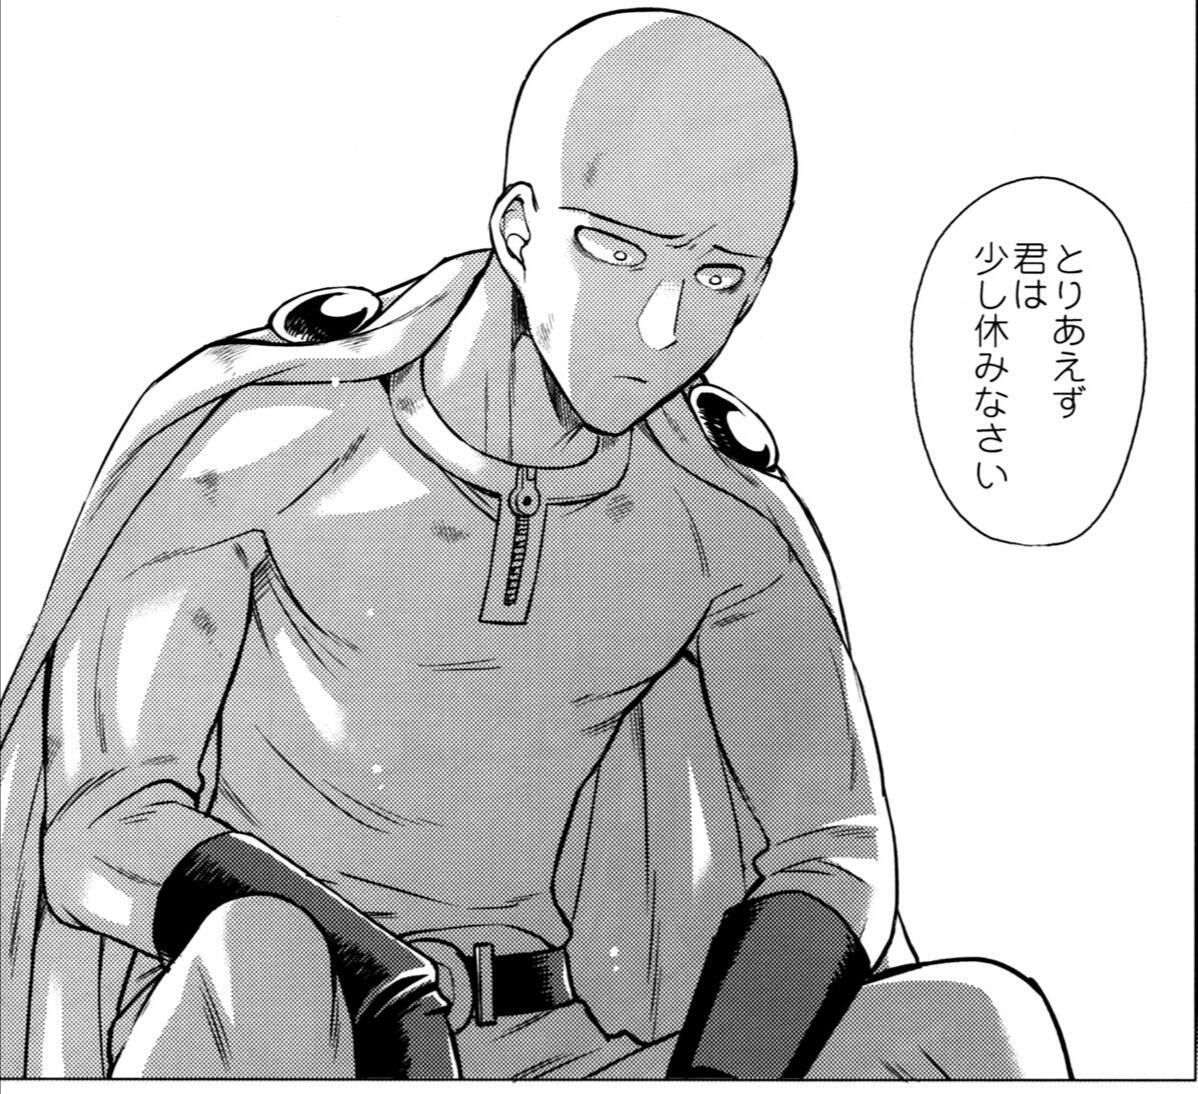 Saitama When His Fans Call Him Gay Genos Gender Bender Hentai On Nhenta Net R Onepunchman One Punch Man Know Your Meme Последние твиты от nhentai (@nhentaicom). one punch man